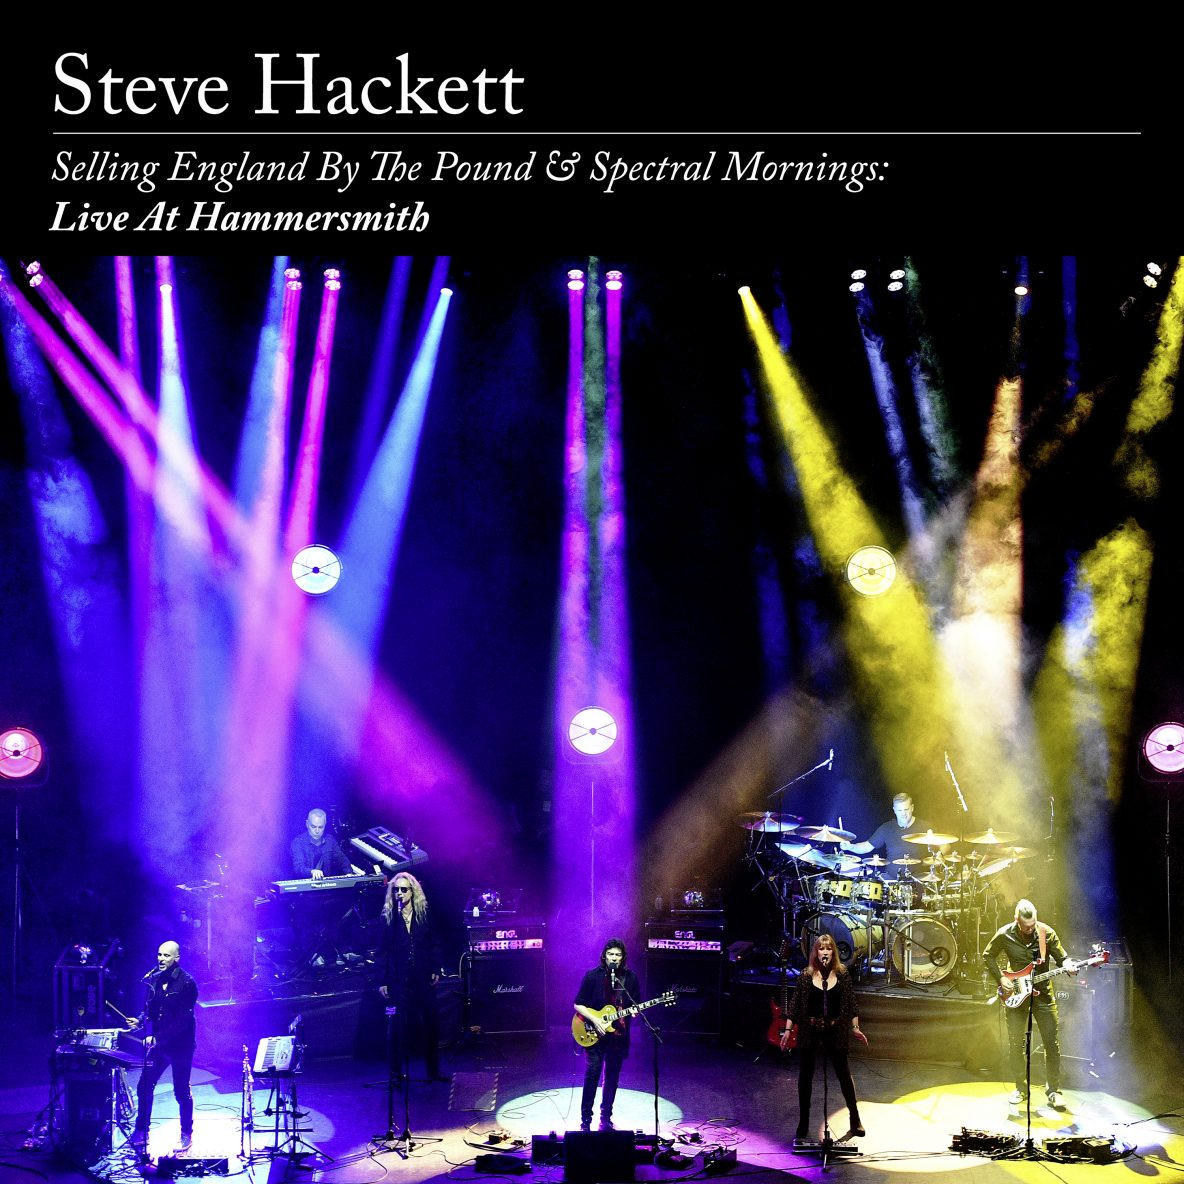 Steve Hackett – Selling England By The Pound & Spectral Mornings_ Live At Hammersmith